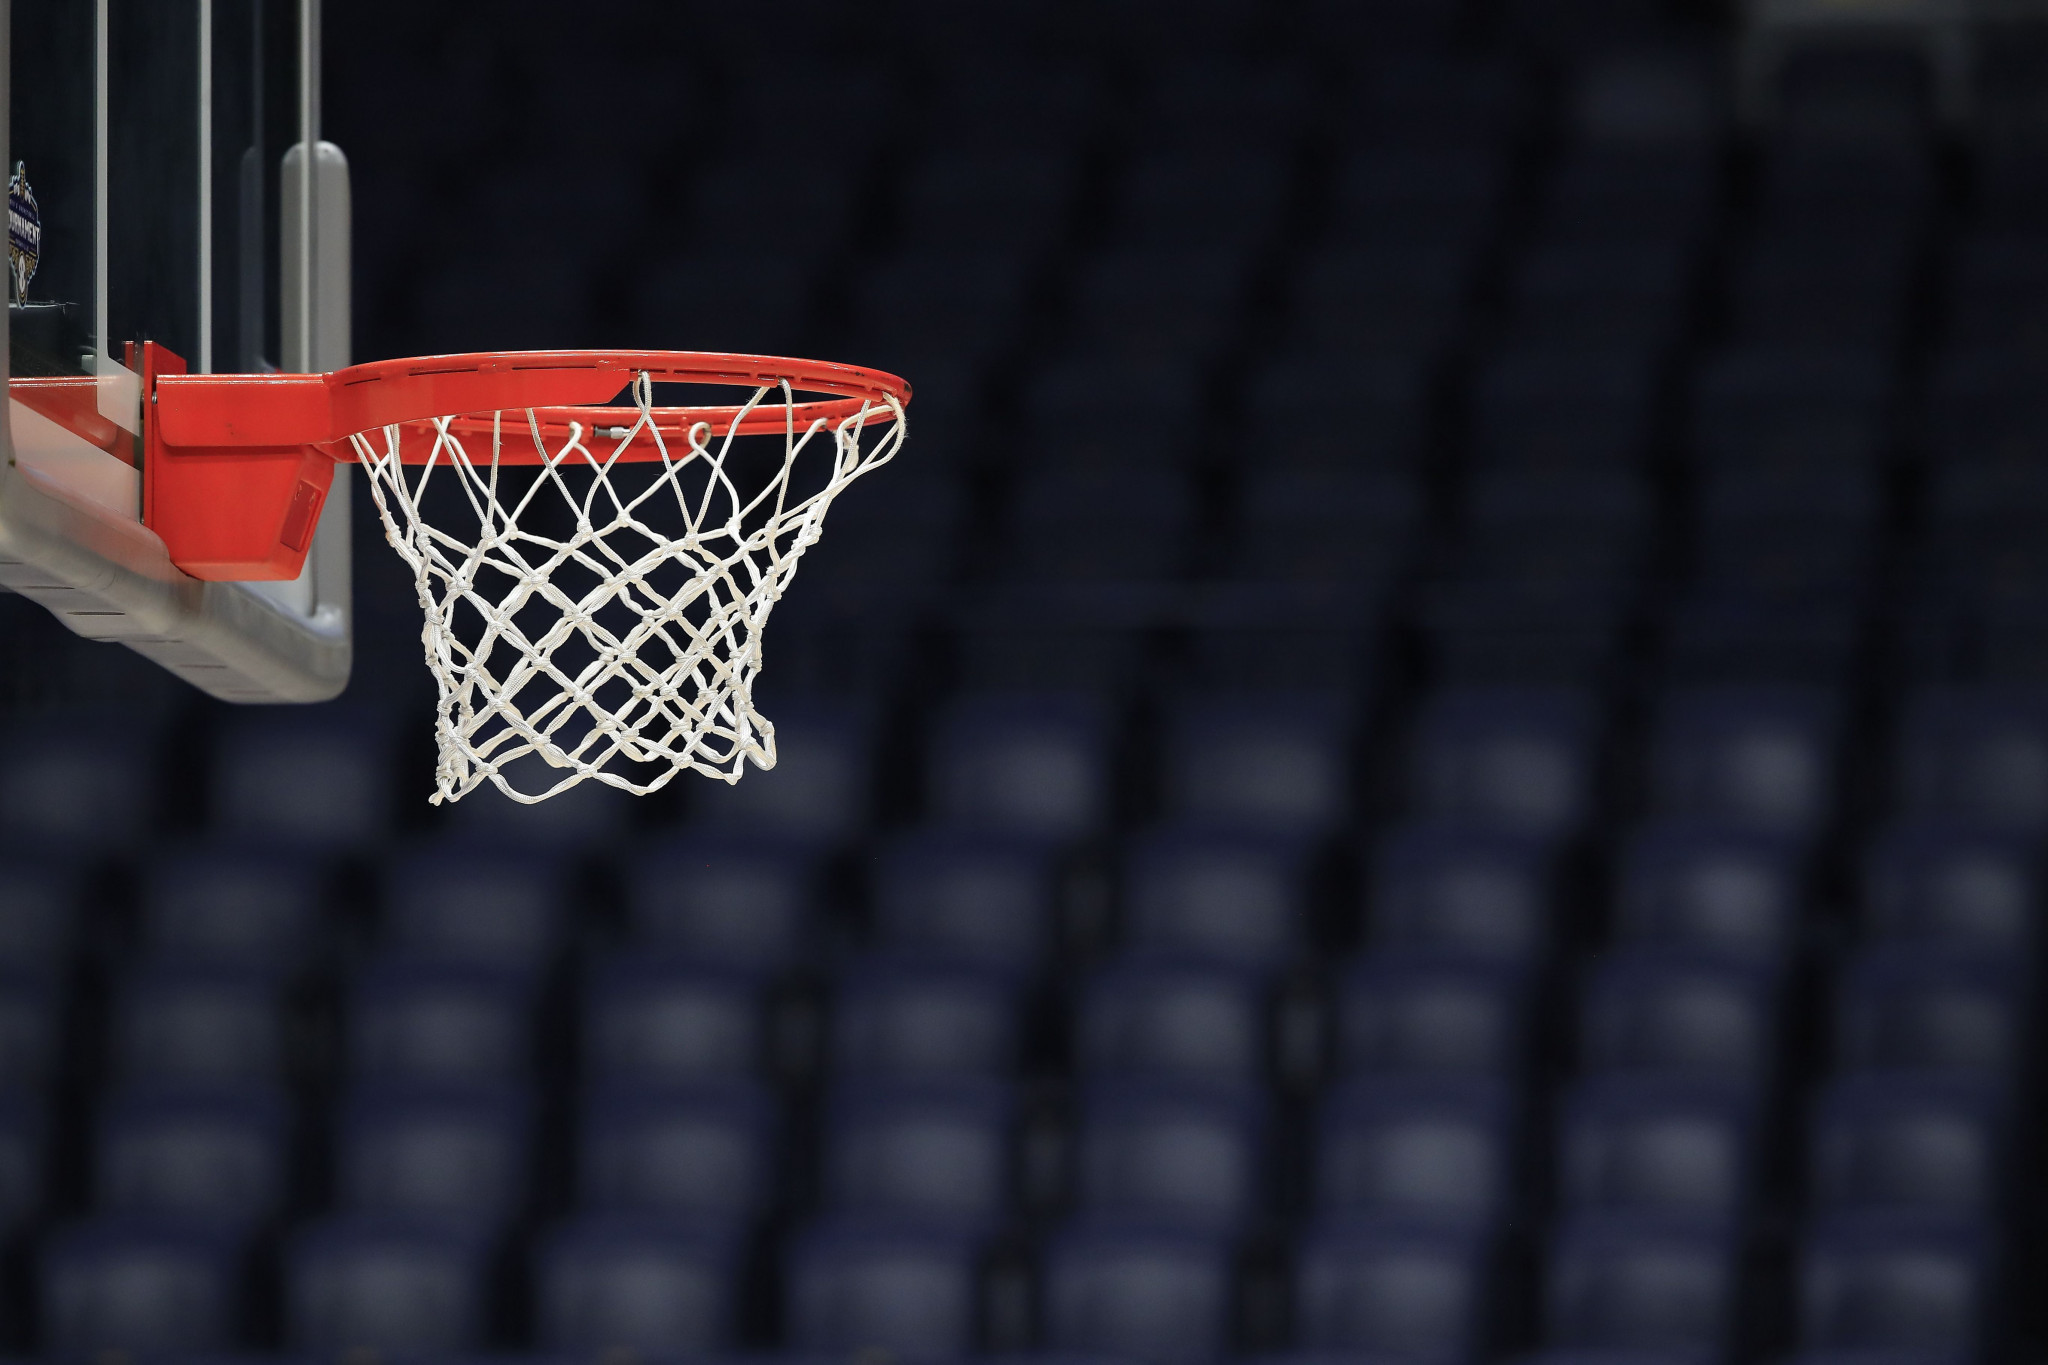 Pacific Games qualifier FIBA Melanesia Cup pushed back to 2022